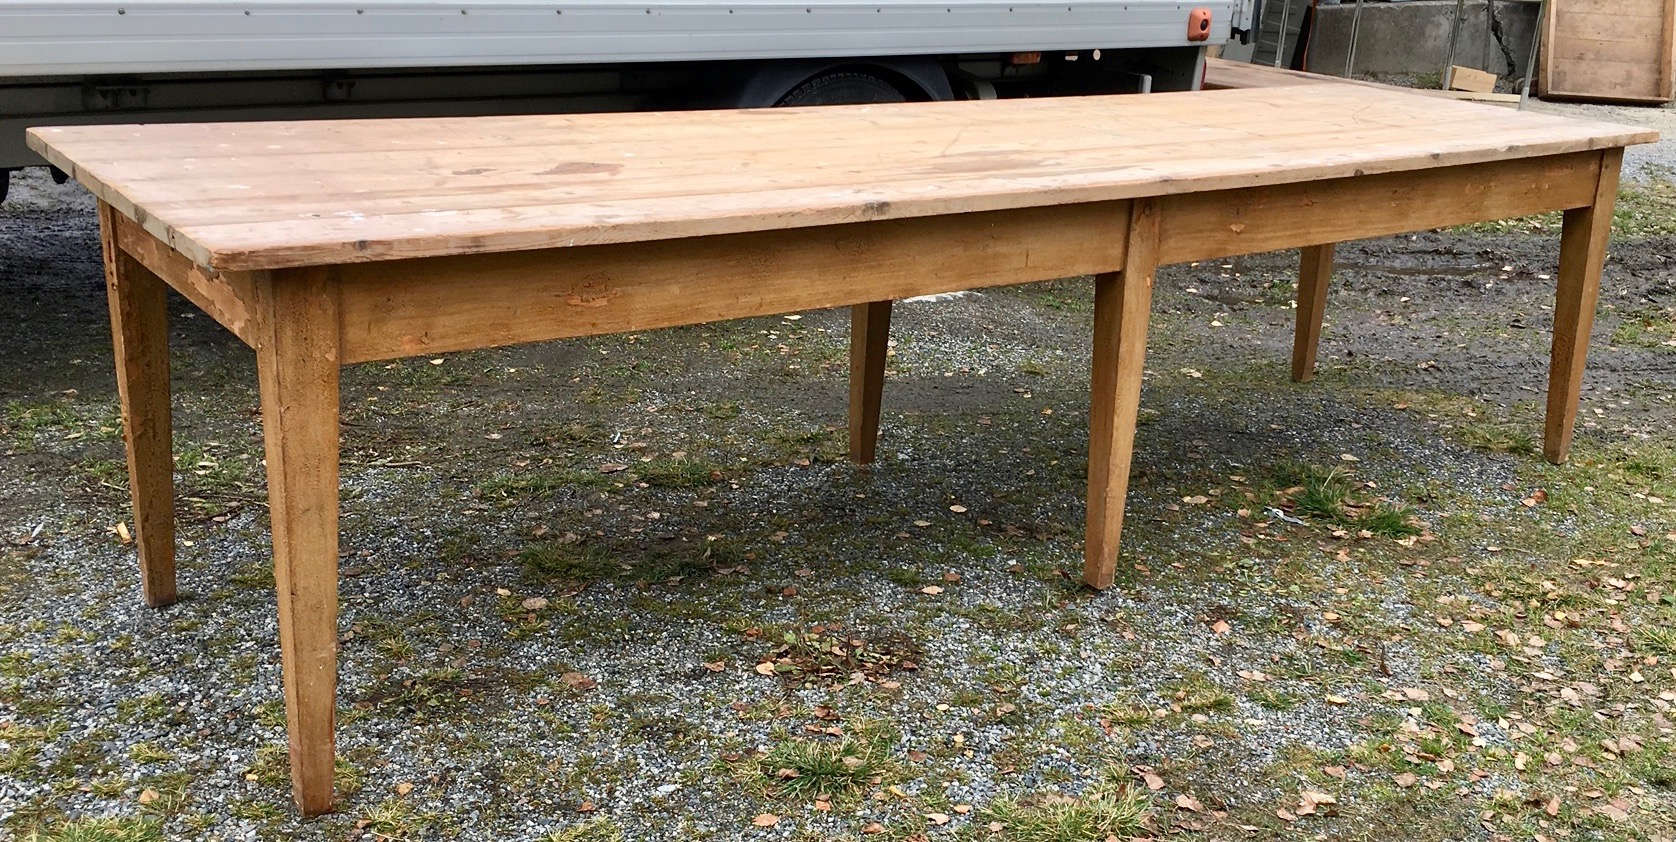 Large dining room / work table. Distressed surface in untouched condition